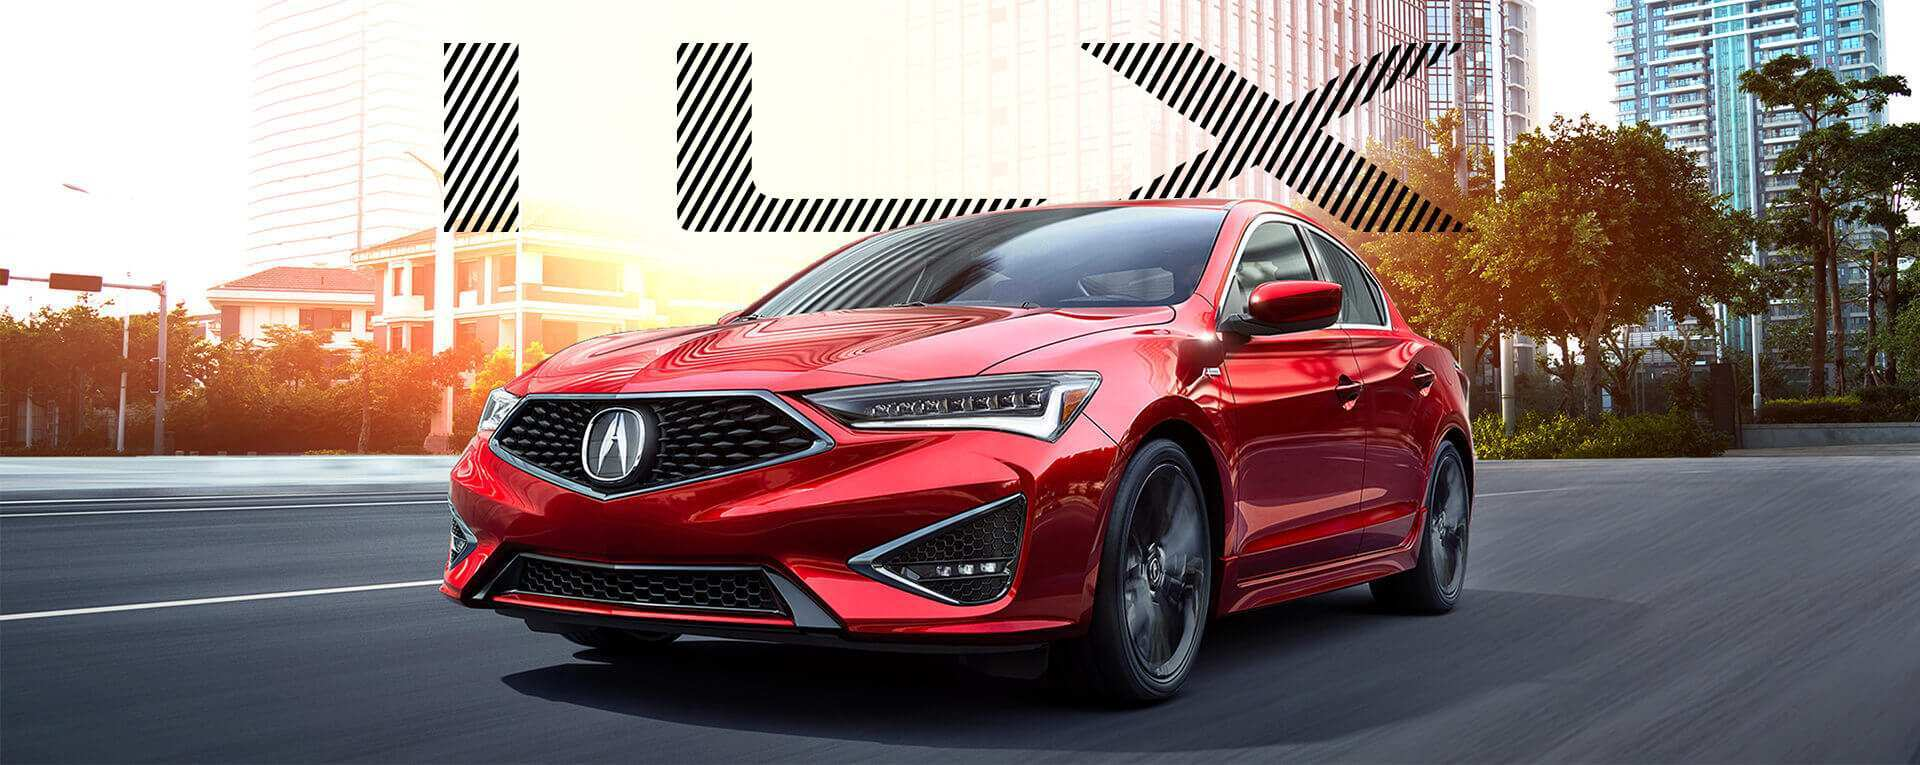 68 A 2019 Acura Ilx Exterior And Interior